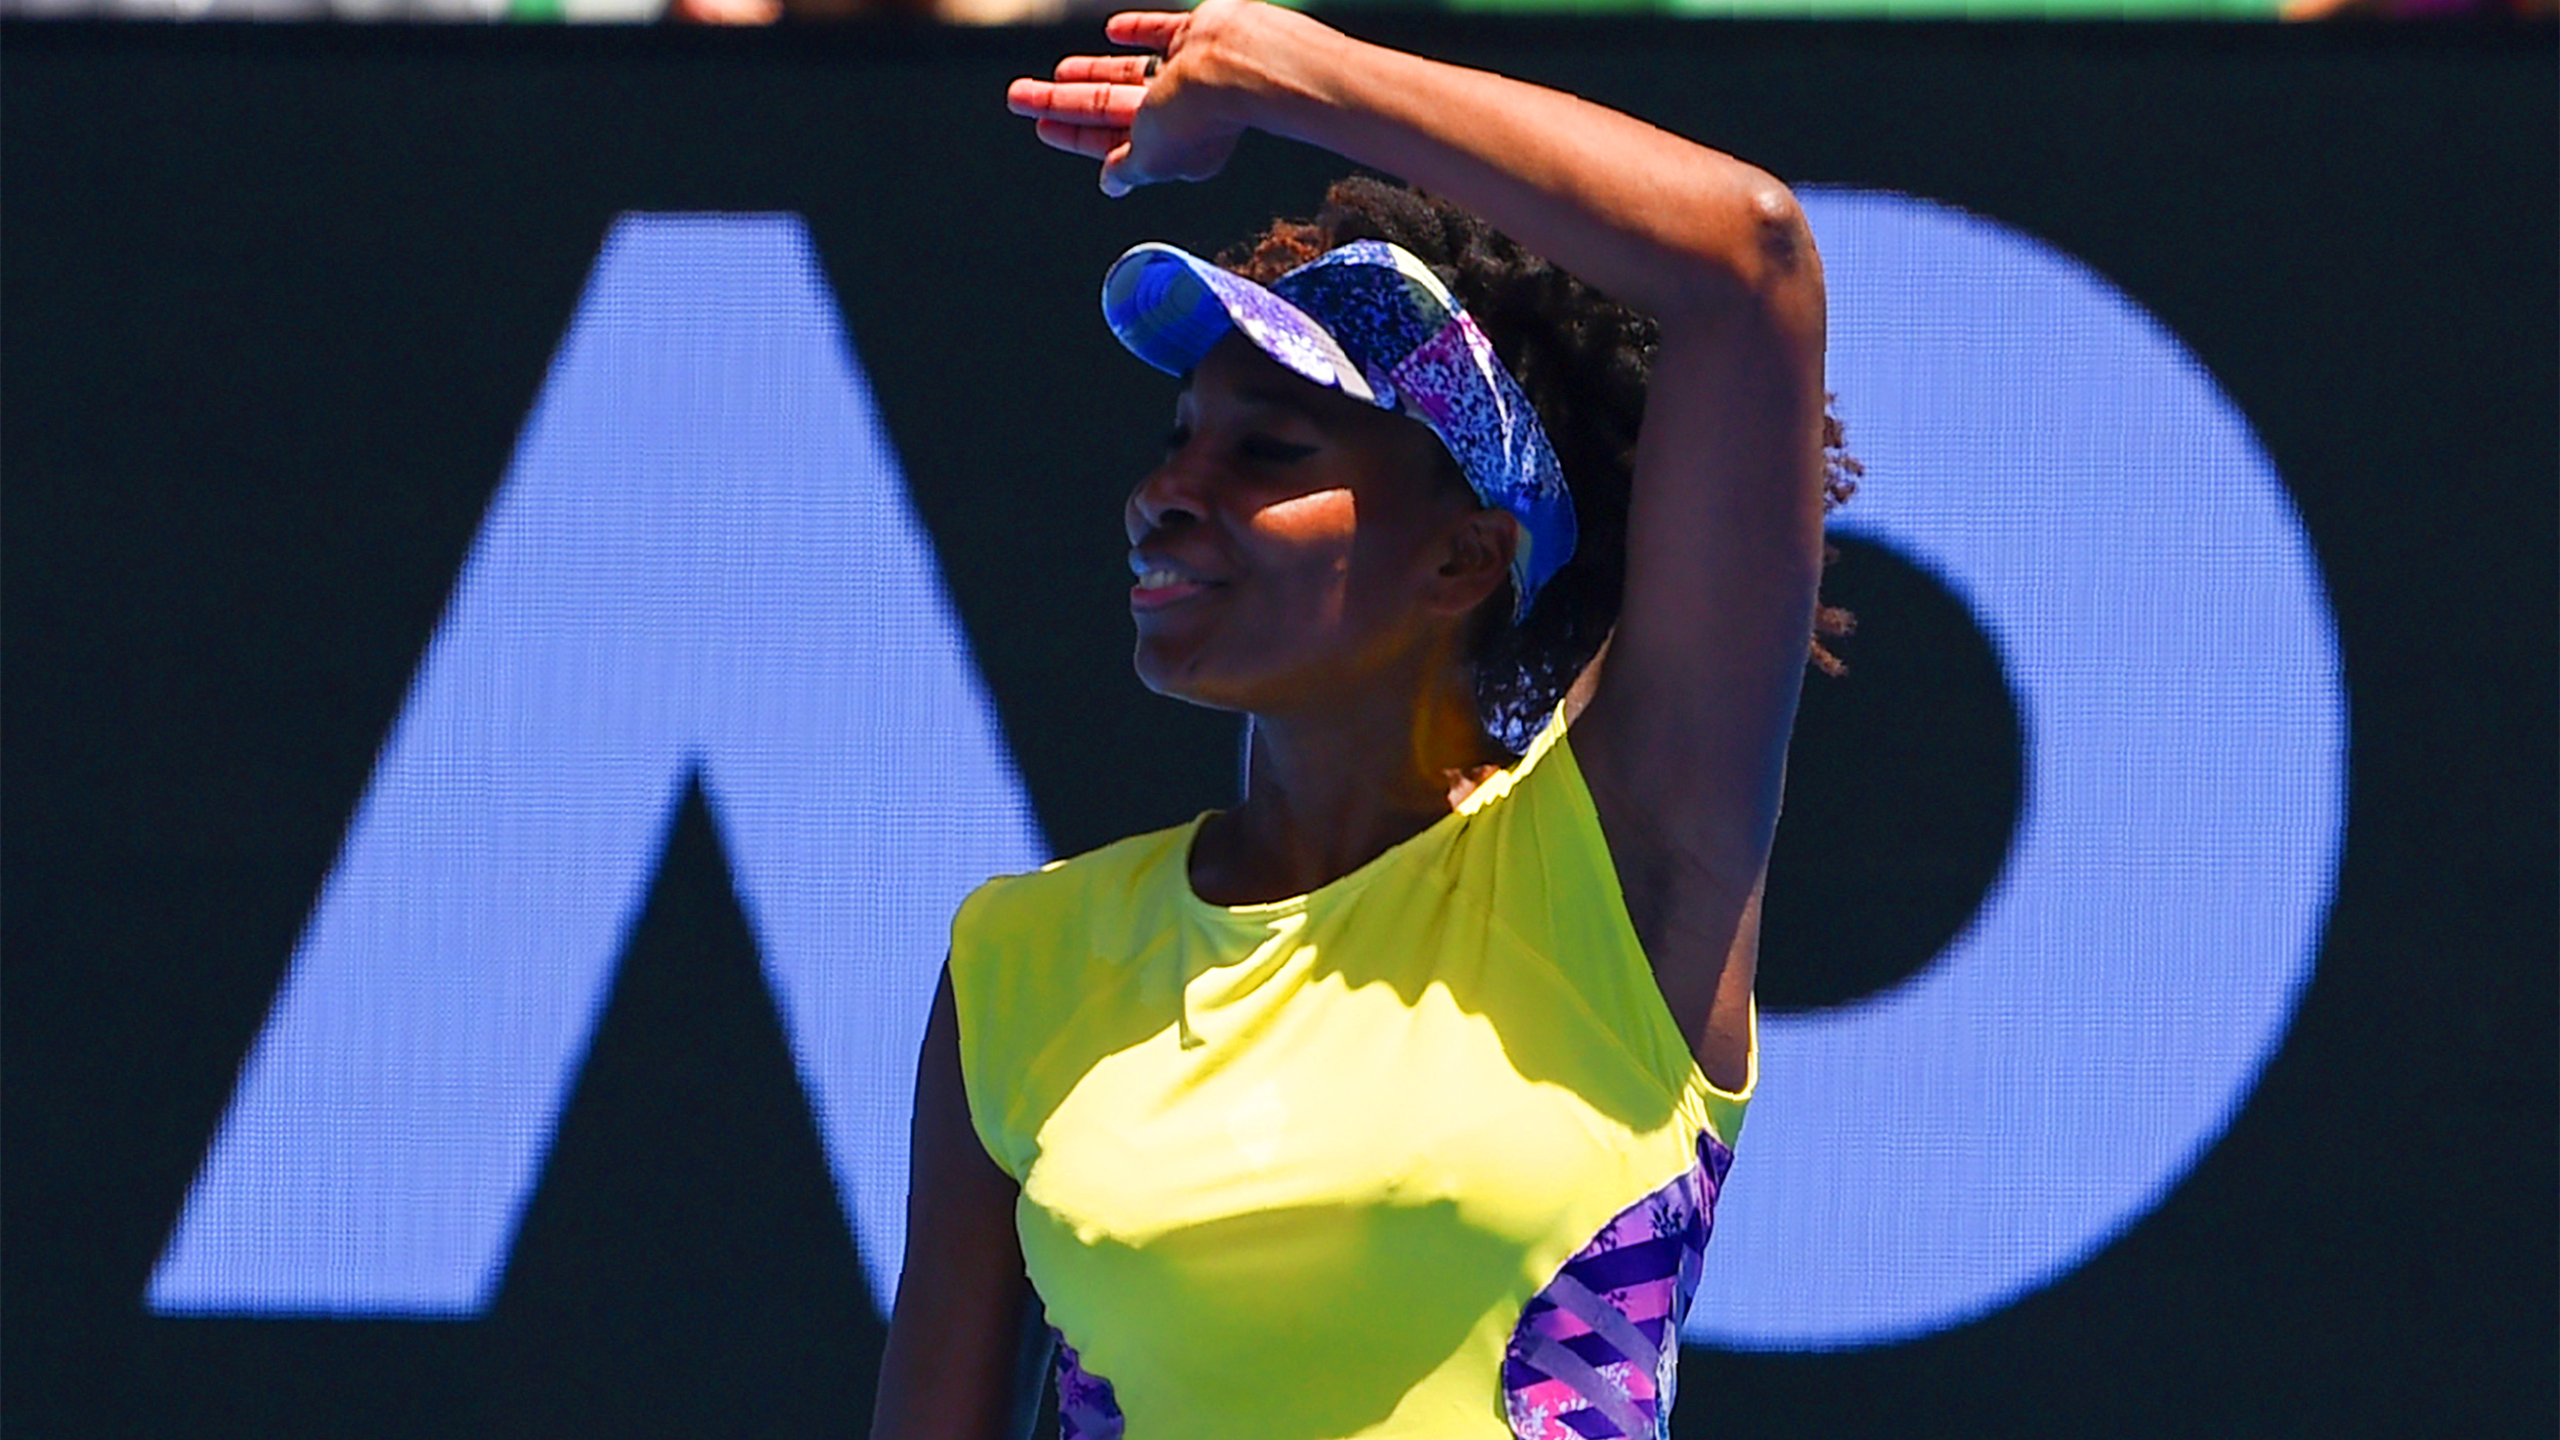 Venus Williams of the US celebrates after victory against Switzerland's Stefanie Voegele during their women's singles match on day three of the Australian Open